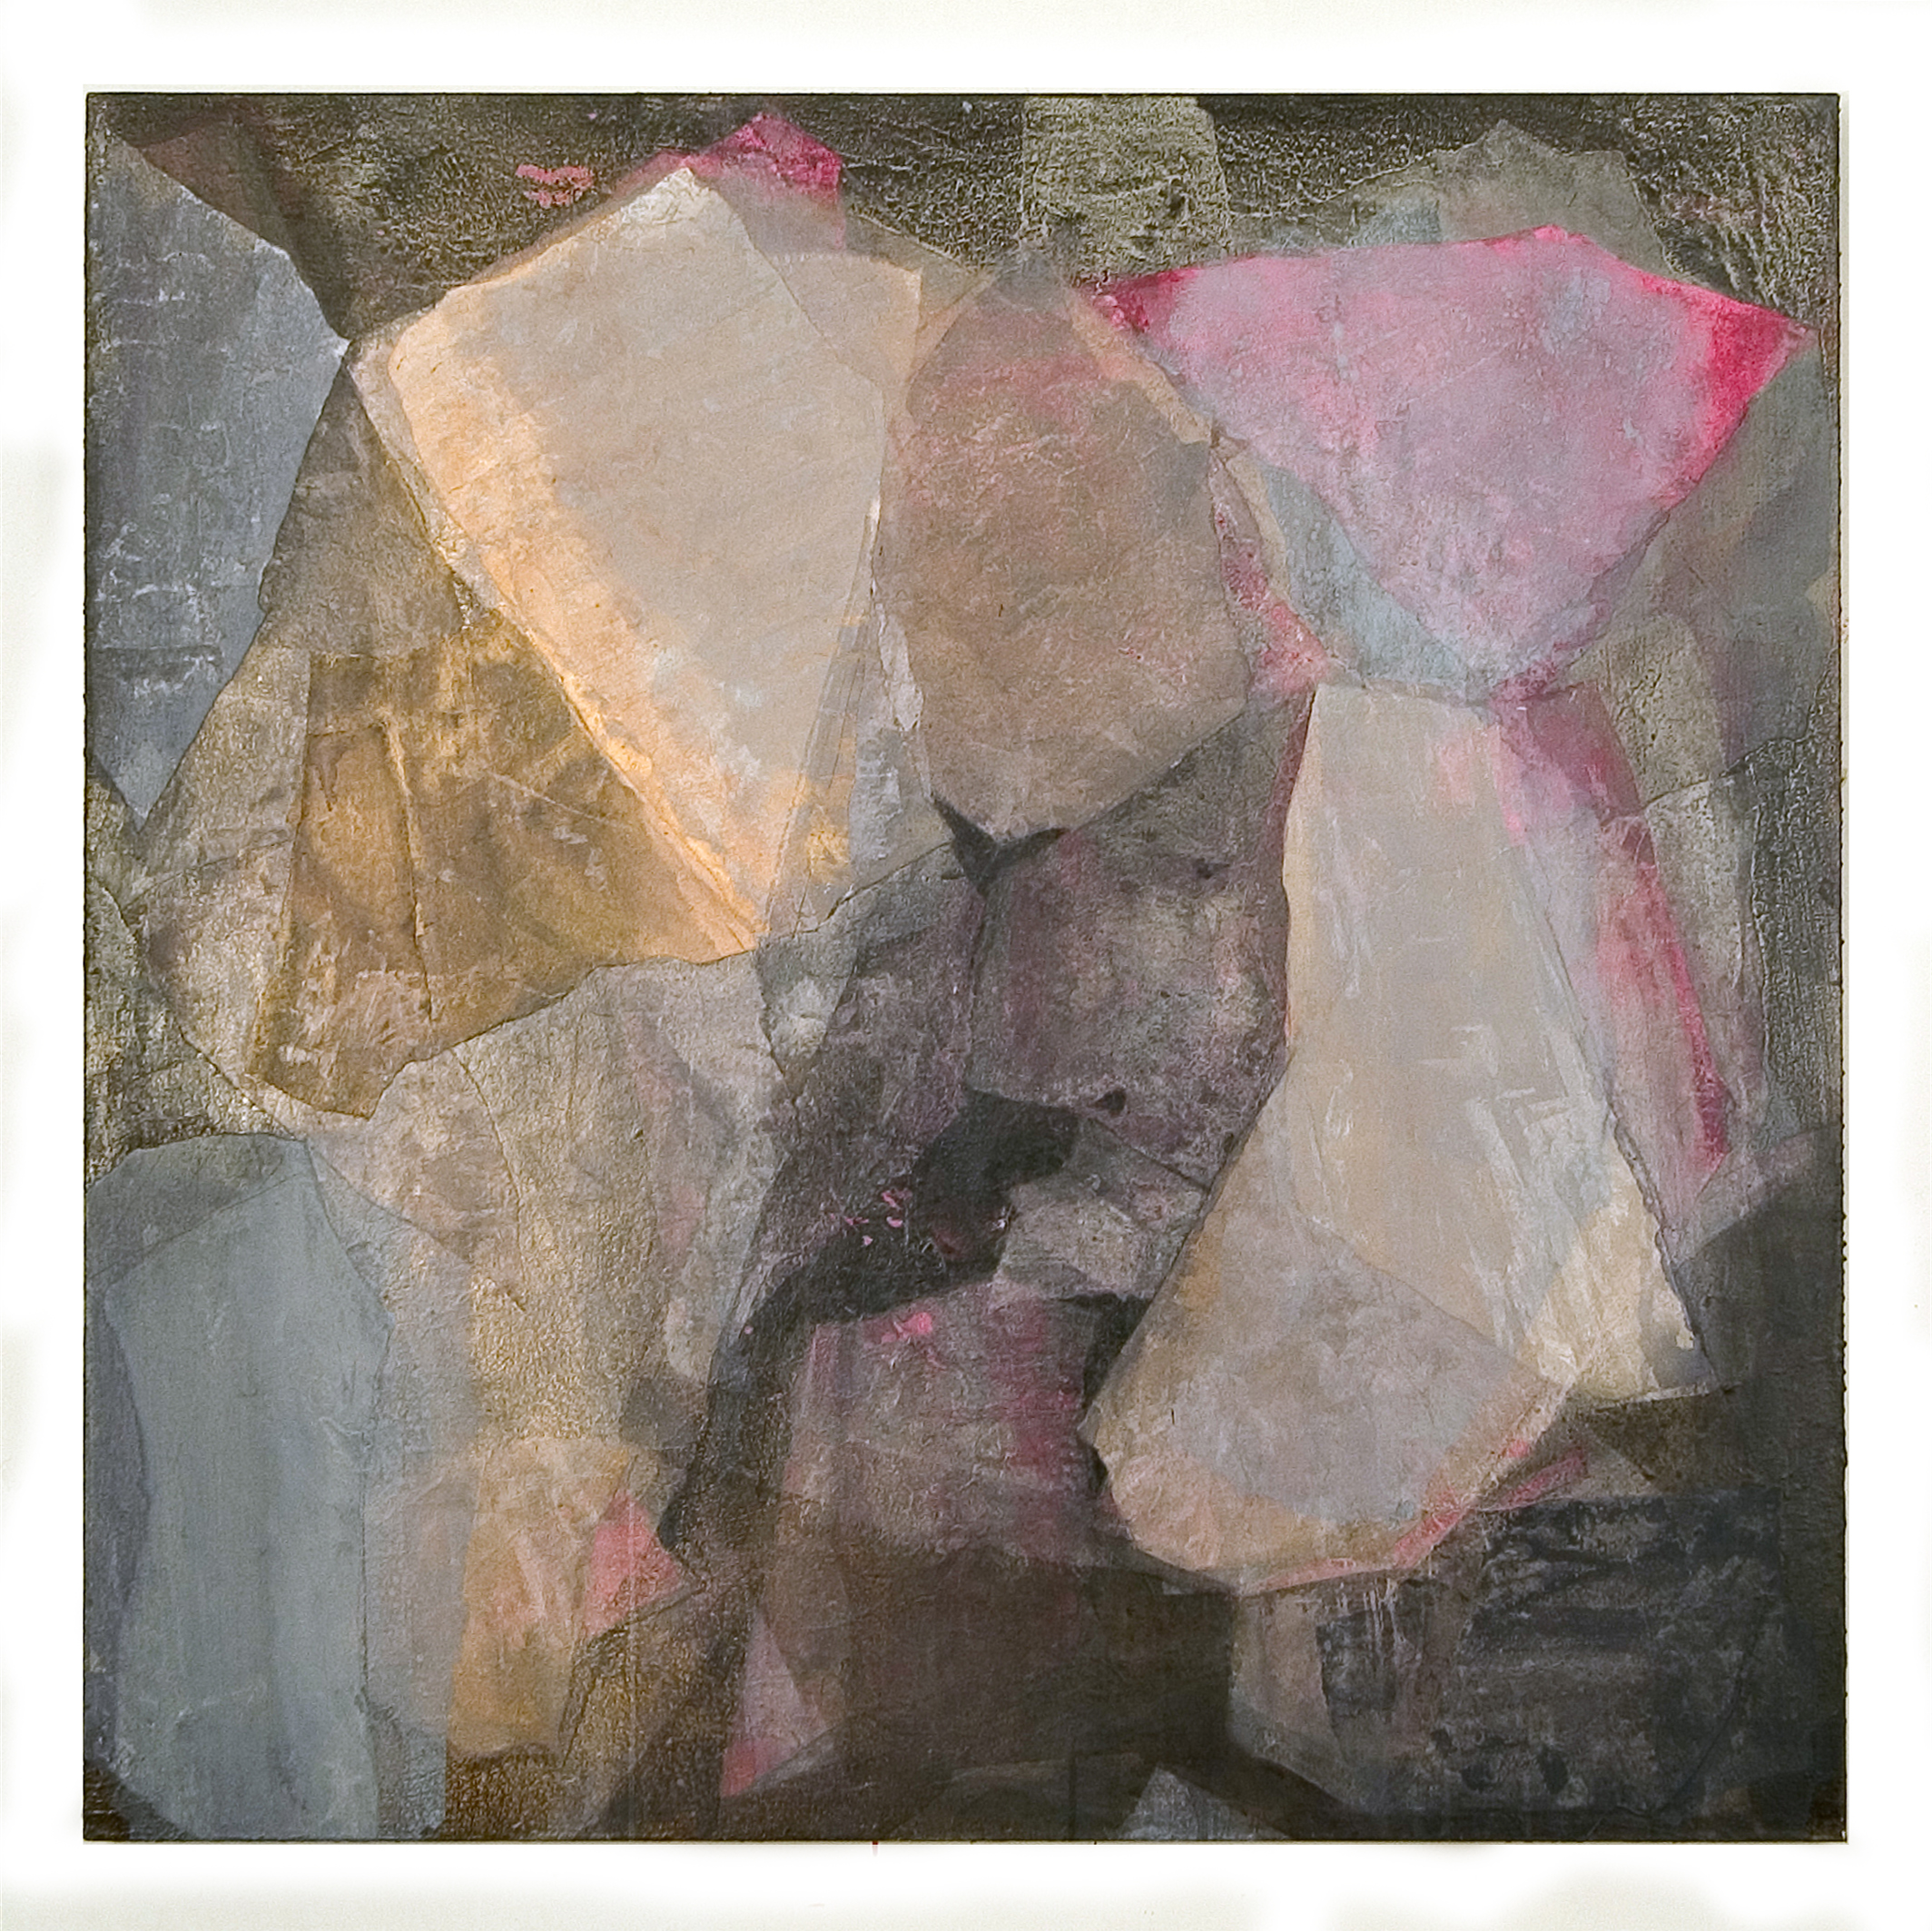 SoHyun Bae, Wrapped Shards #14, 2002, rice-paper and pure pigment on canvas, 60 x 60 inches